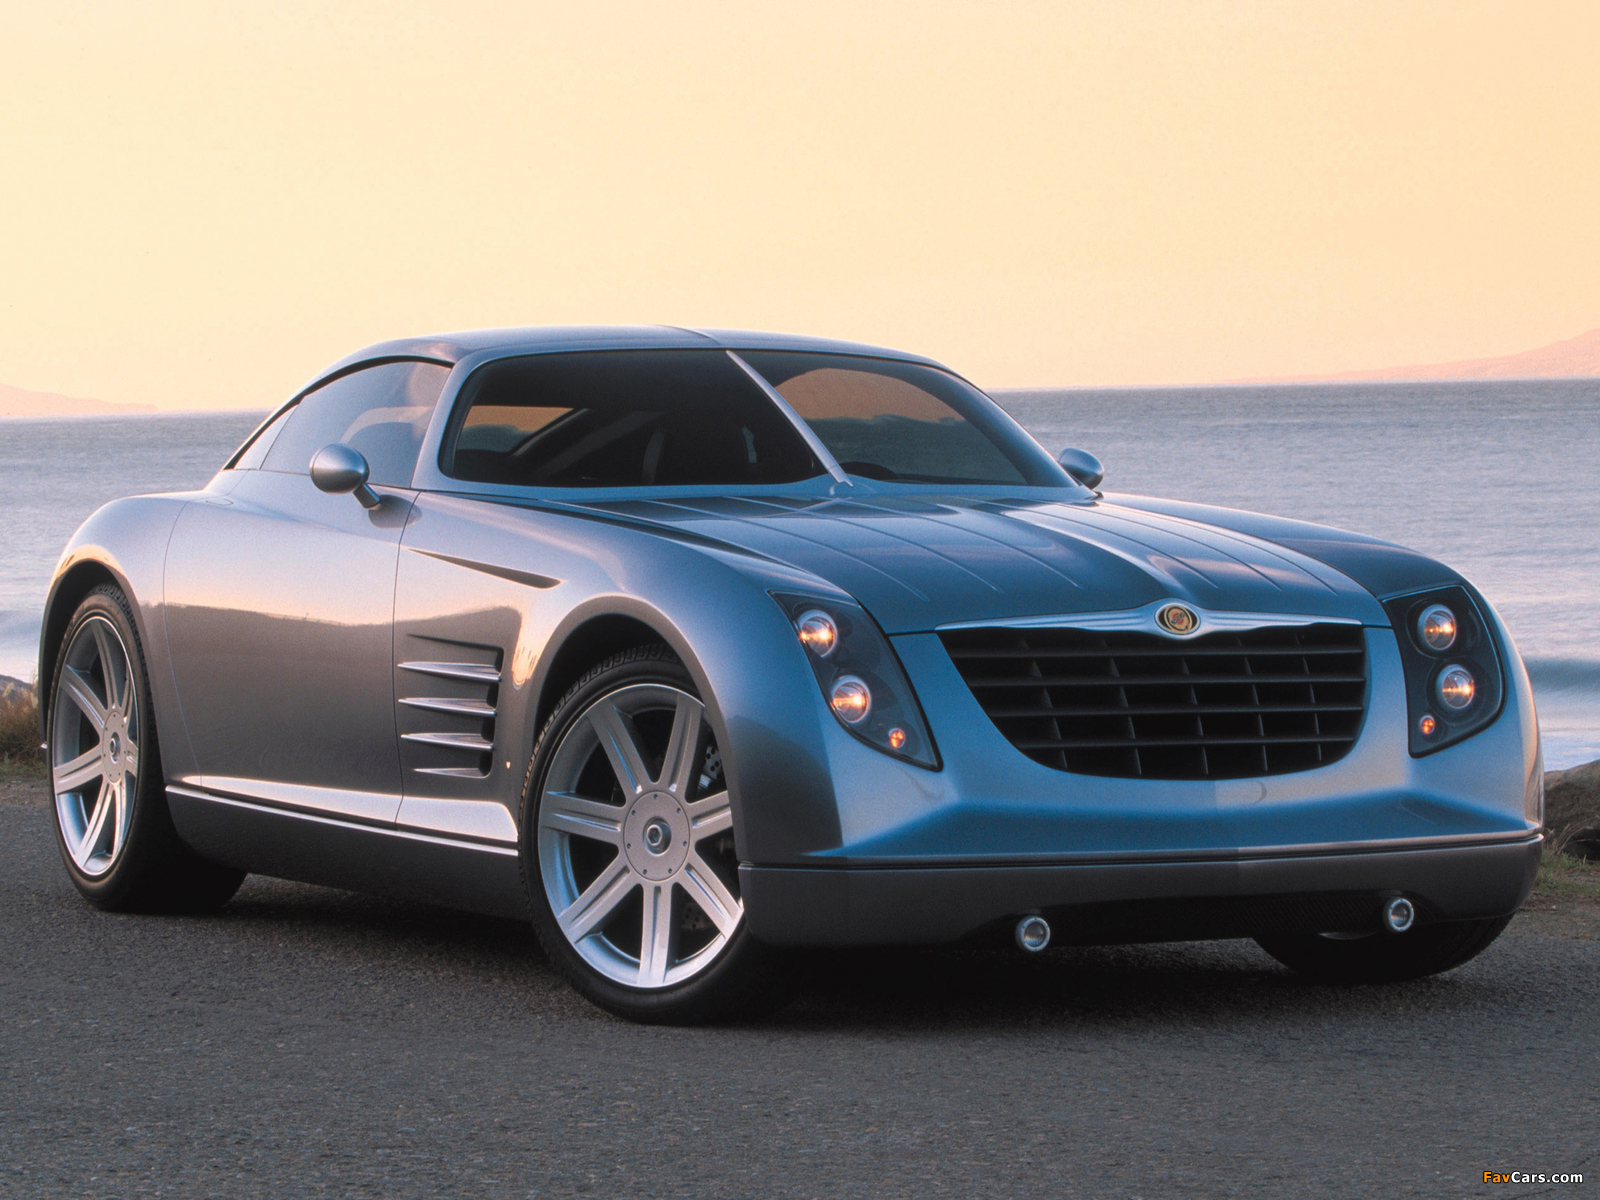 Chrysler Crossfire Concept 2001 wallpapers (1600 x 1200)